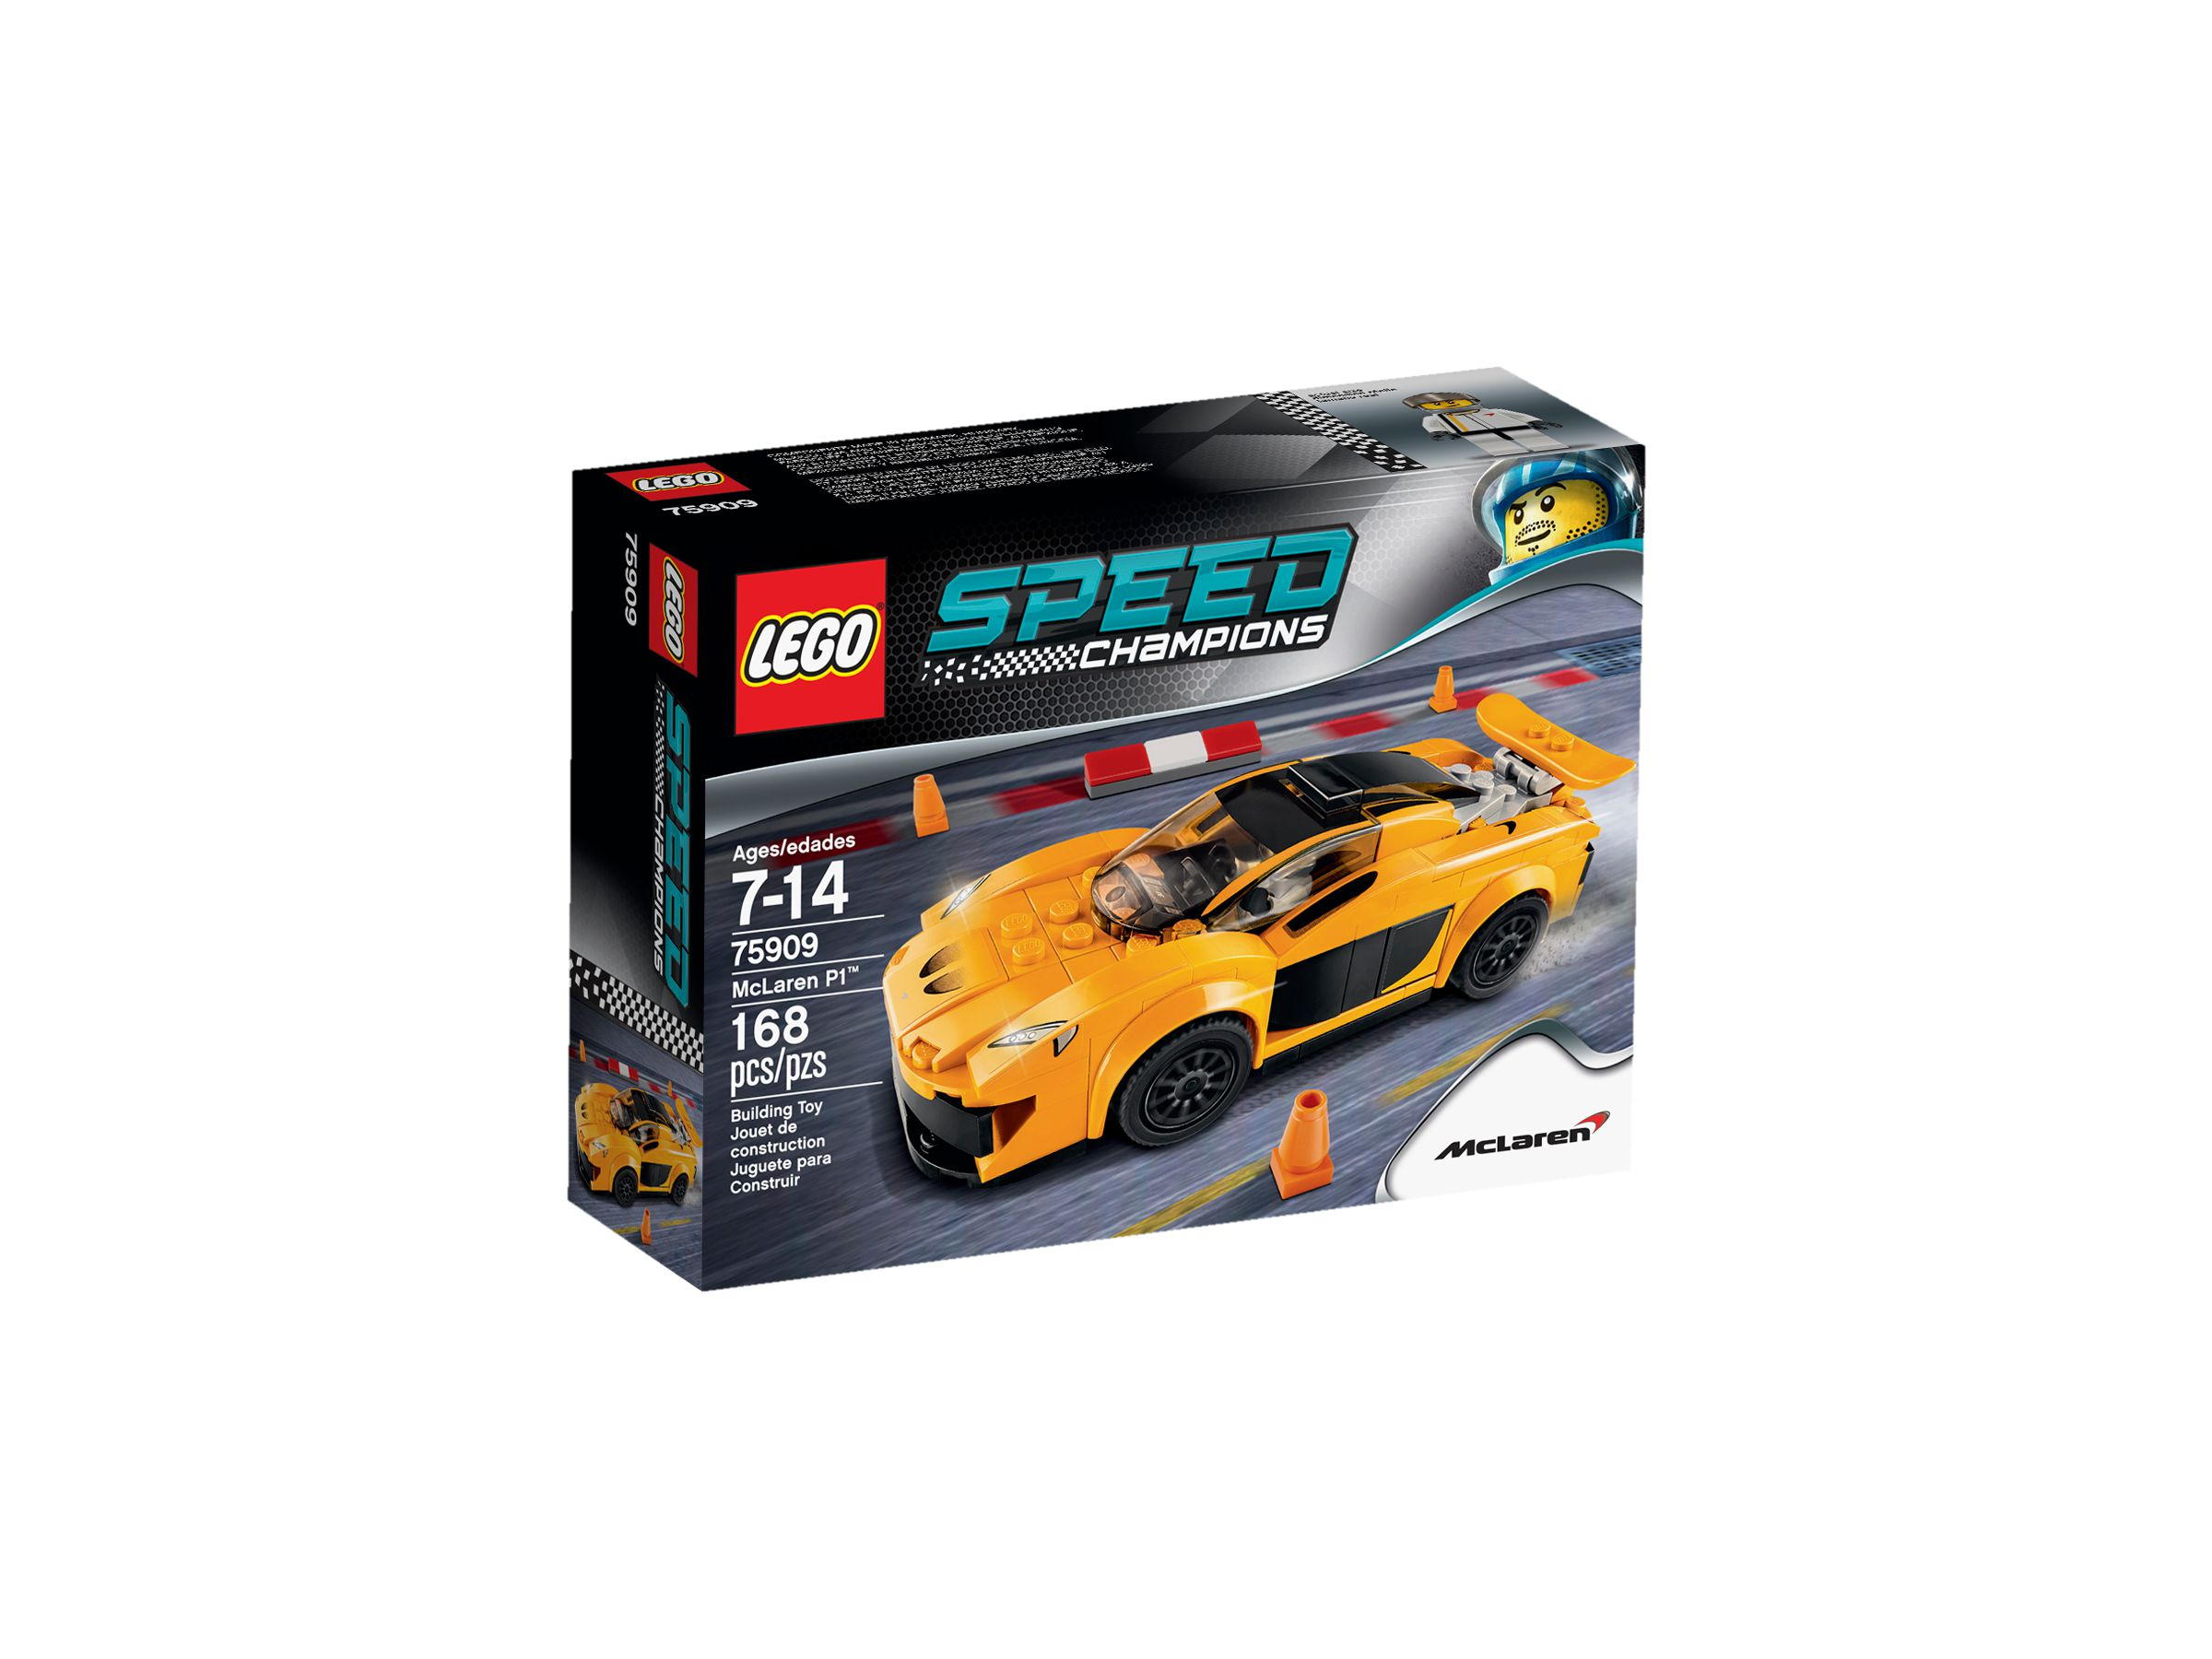 lego 75909 mclaren p1 speed champions 2015 mclaren p1 brickmerge. Black Bedroom Furniture Sets. Home Design Ideas